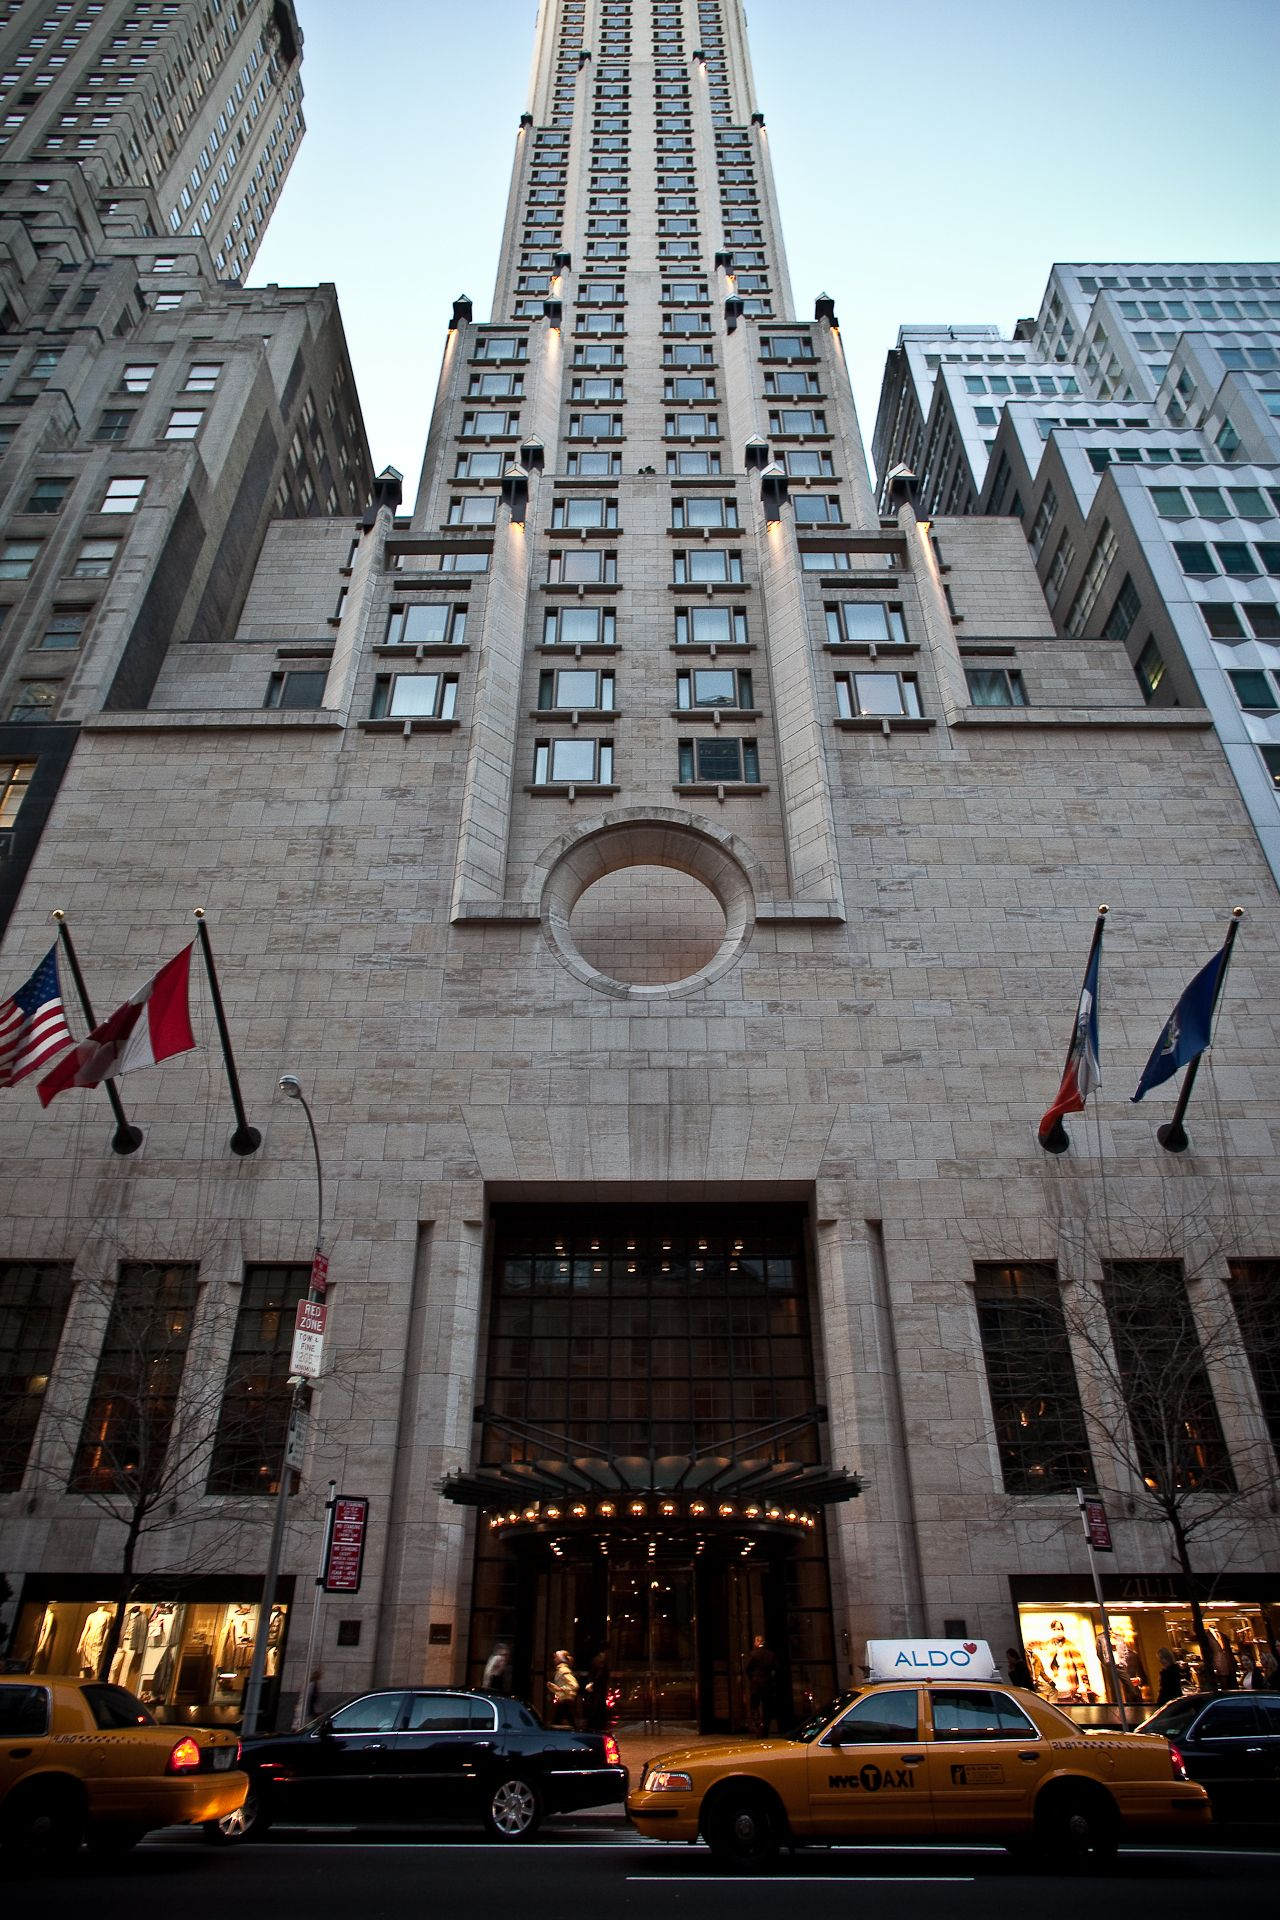 Four Seasons Hotel New York Exterior Entrance Looking Up I've